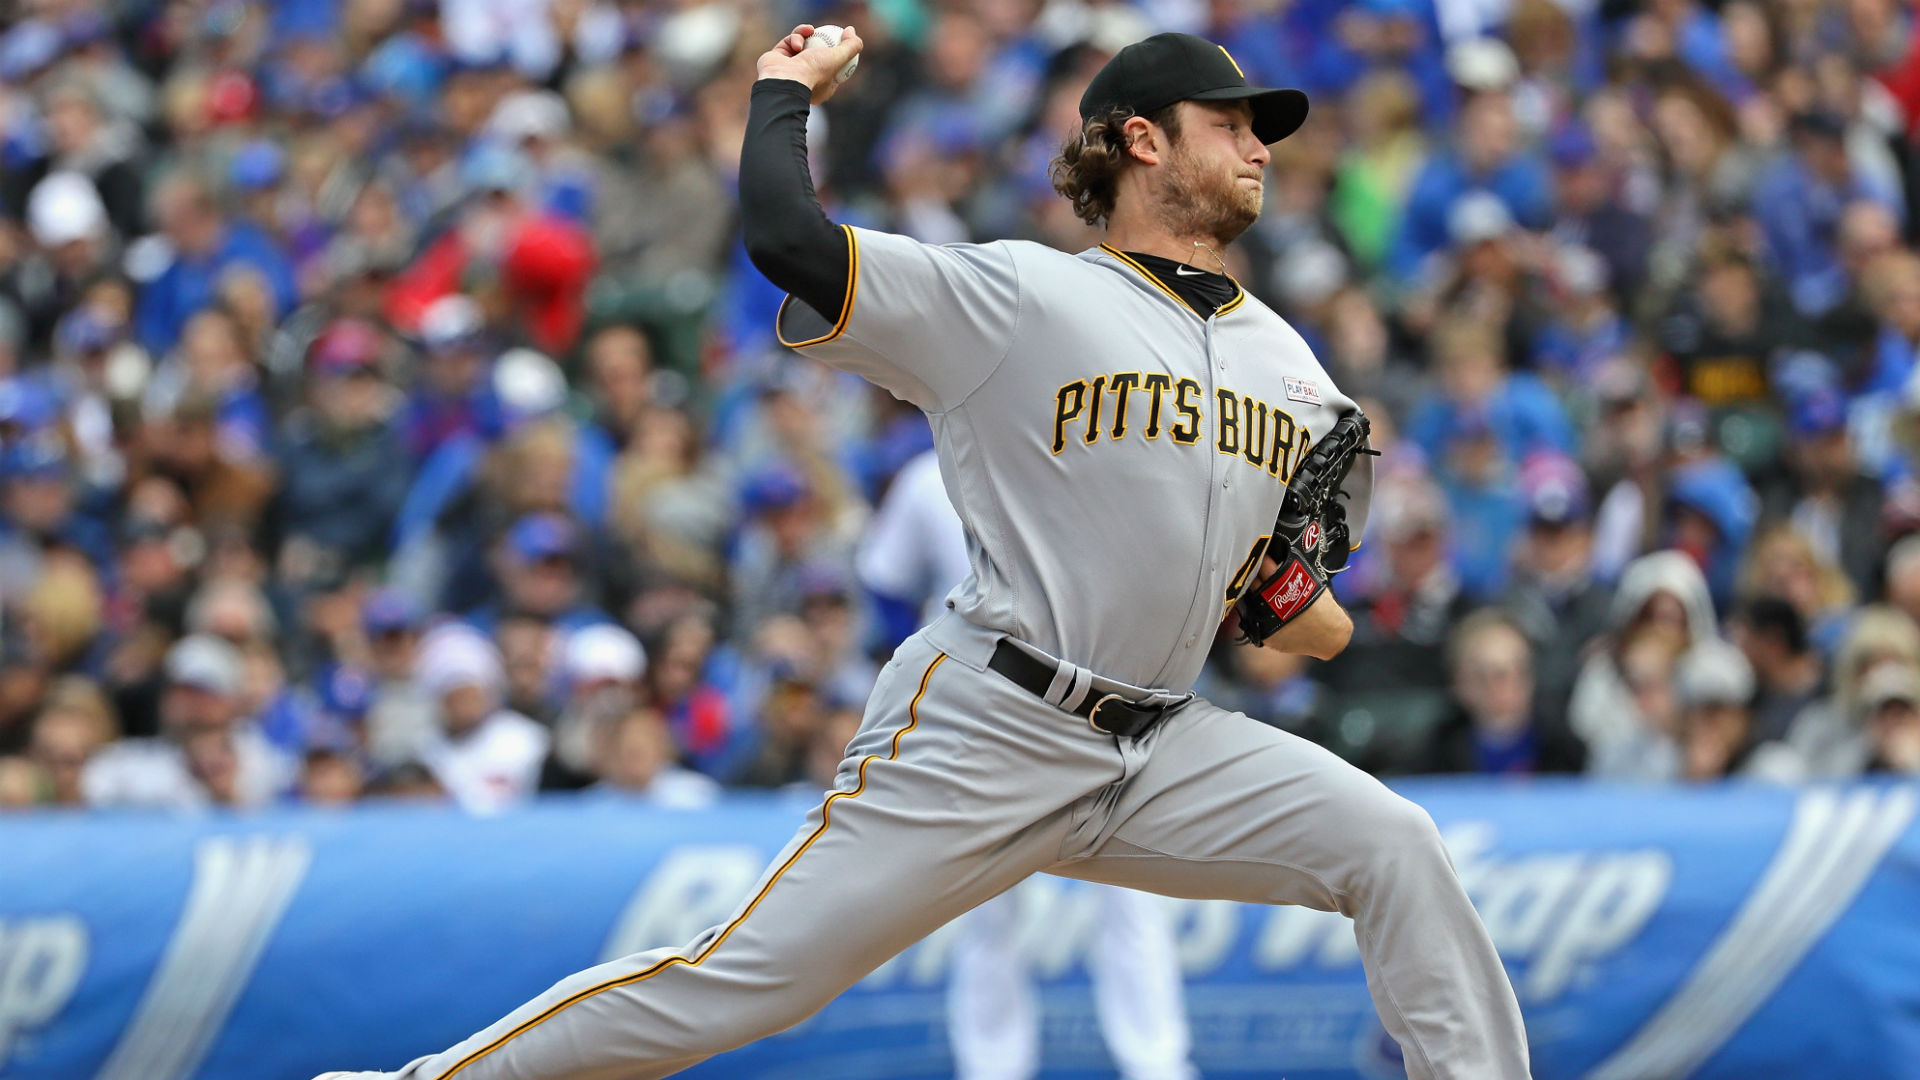 MLB trade rumors: Yankees cool on Gerrit Cole, but not out yet